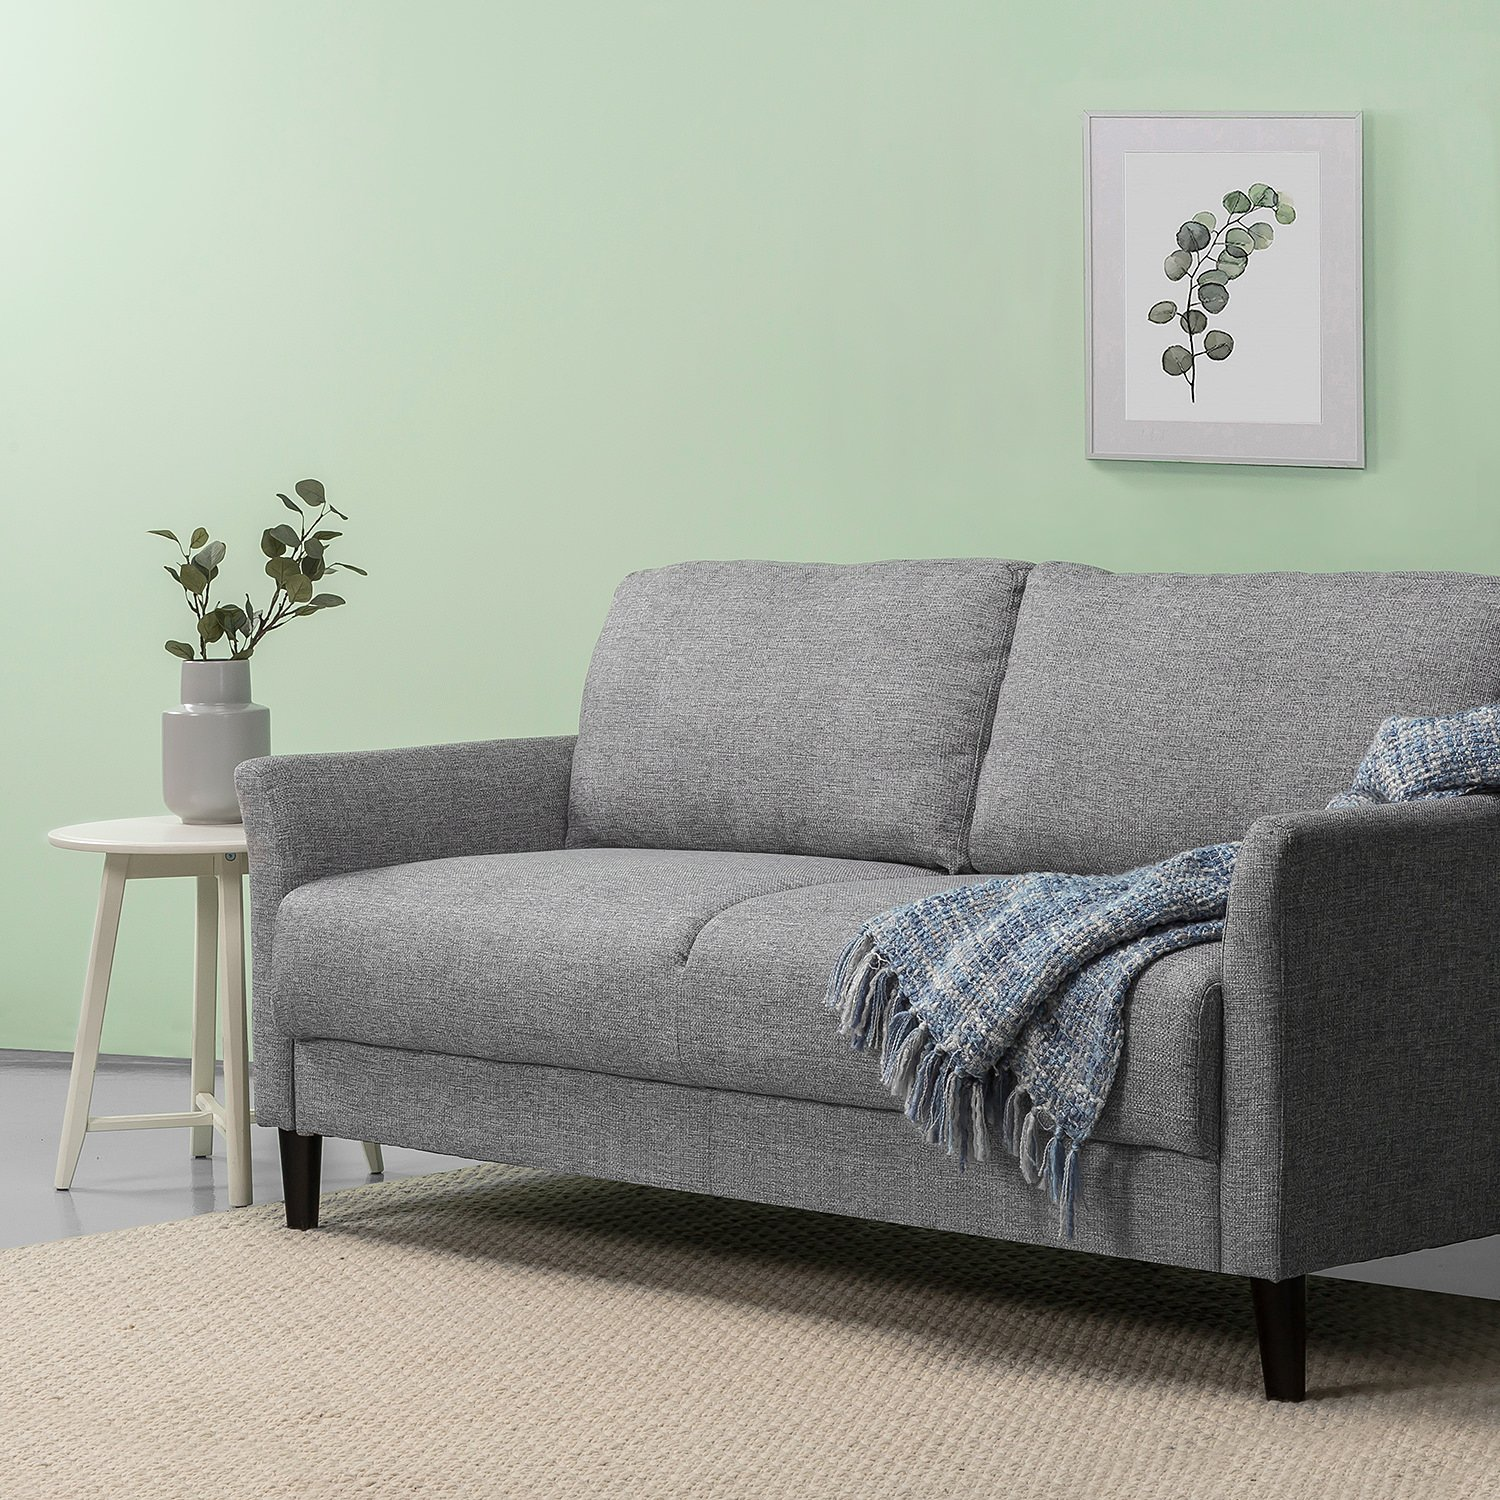 Zinus Jackie Classic Upholstered 71 Inch Sofa / Living Room Couch, Soft Grey by Zinus